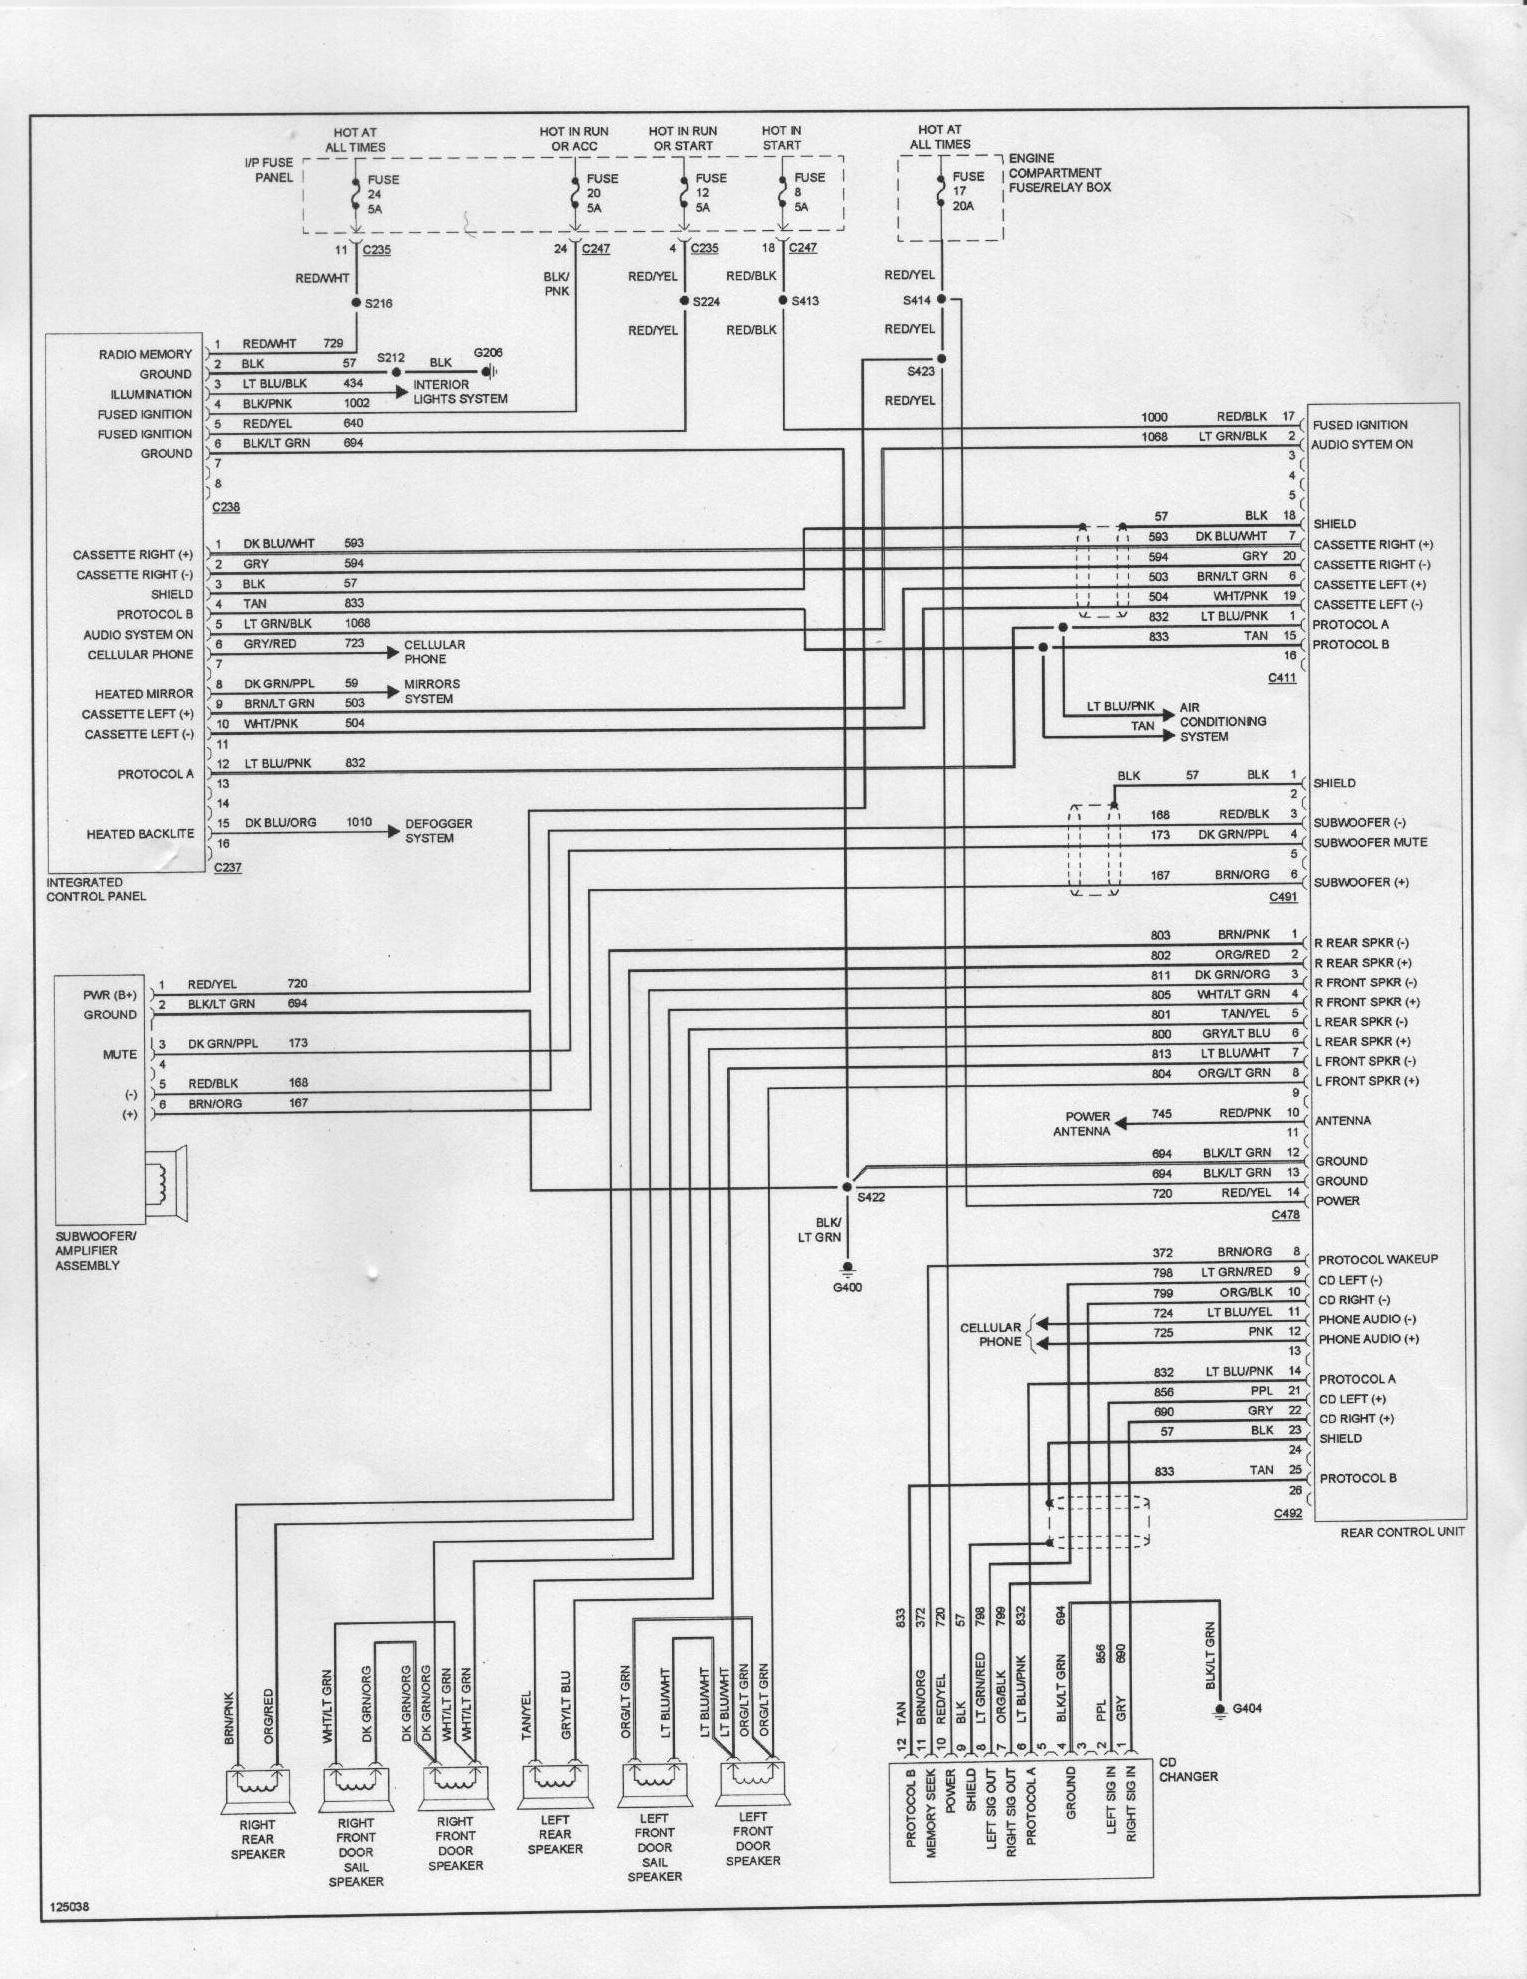 46509d1178551791 scosche orange wire _______ diagram96 scosche gm wiring diagram scosche wiring diagrams instruction Scosche Wiring Harness Diagrams at webbmarketing.co